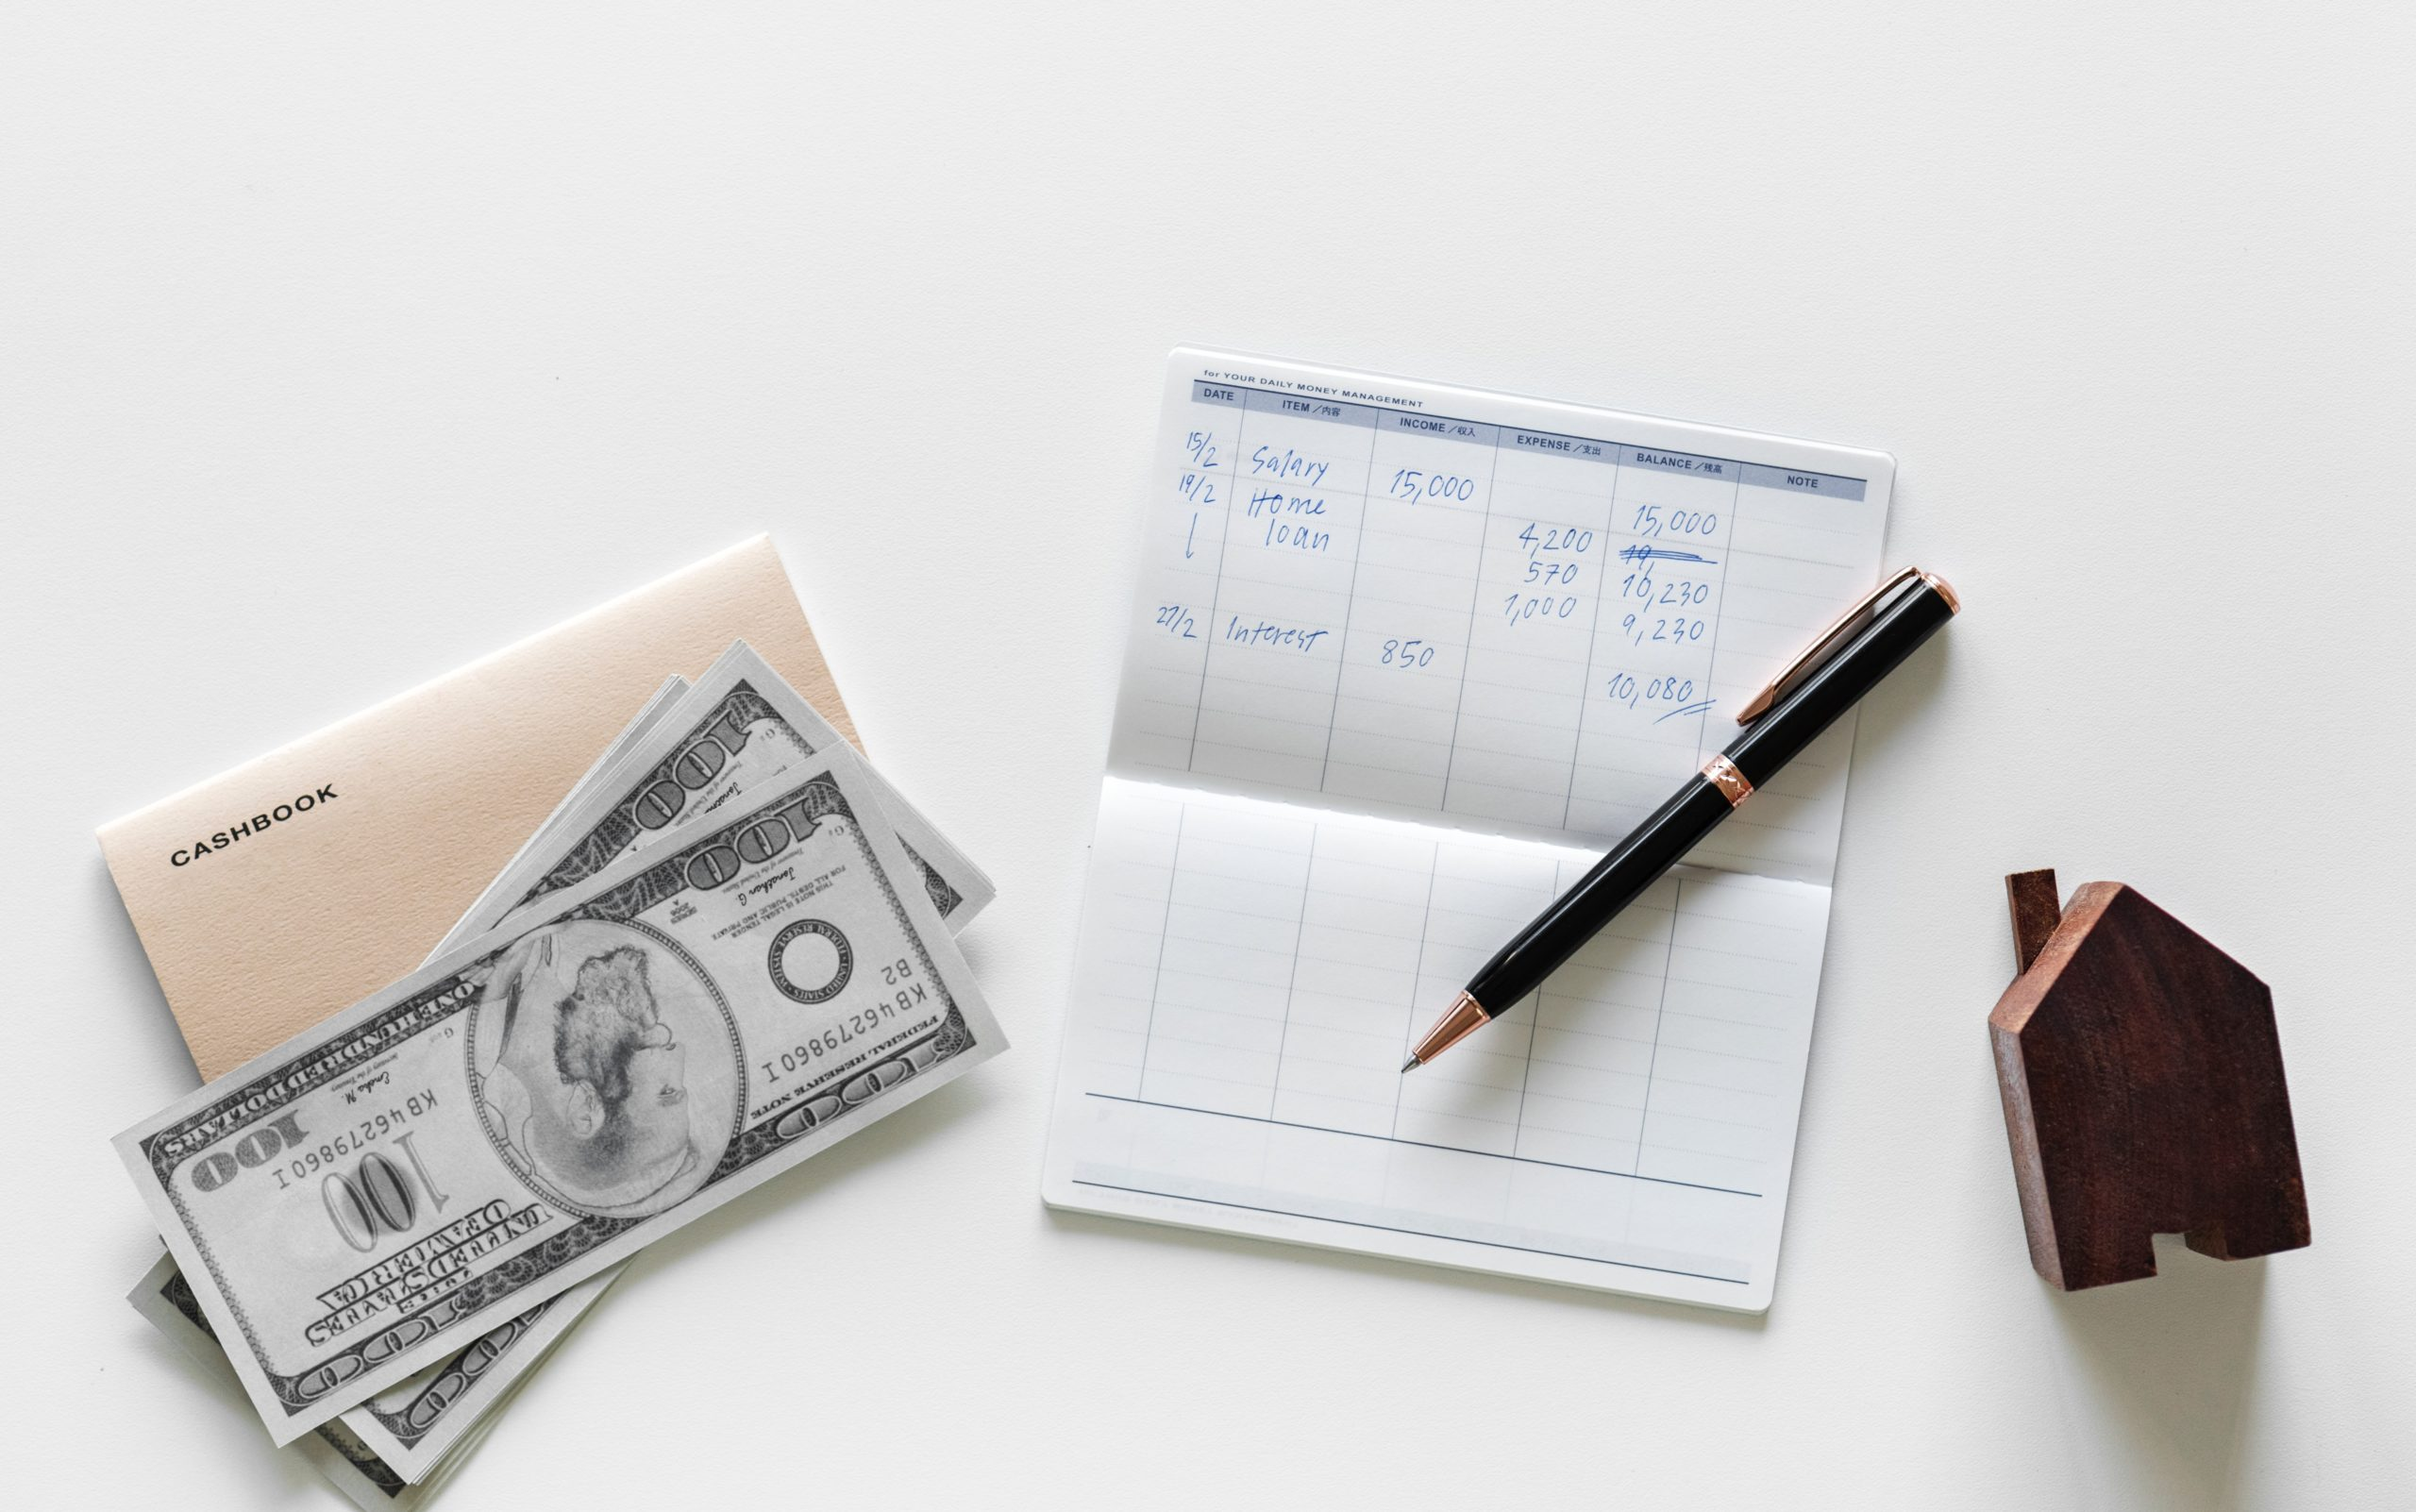 cashbook, money, and pen sitting on table